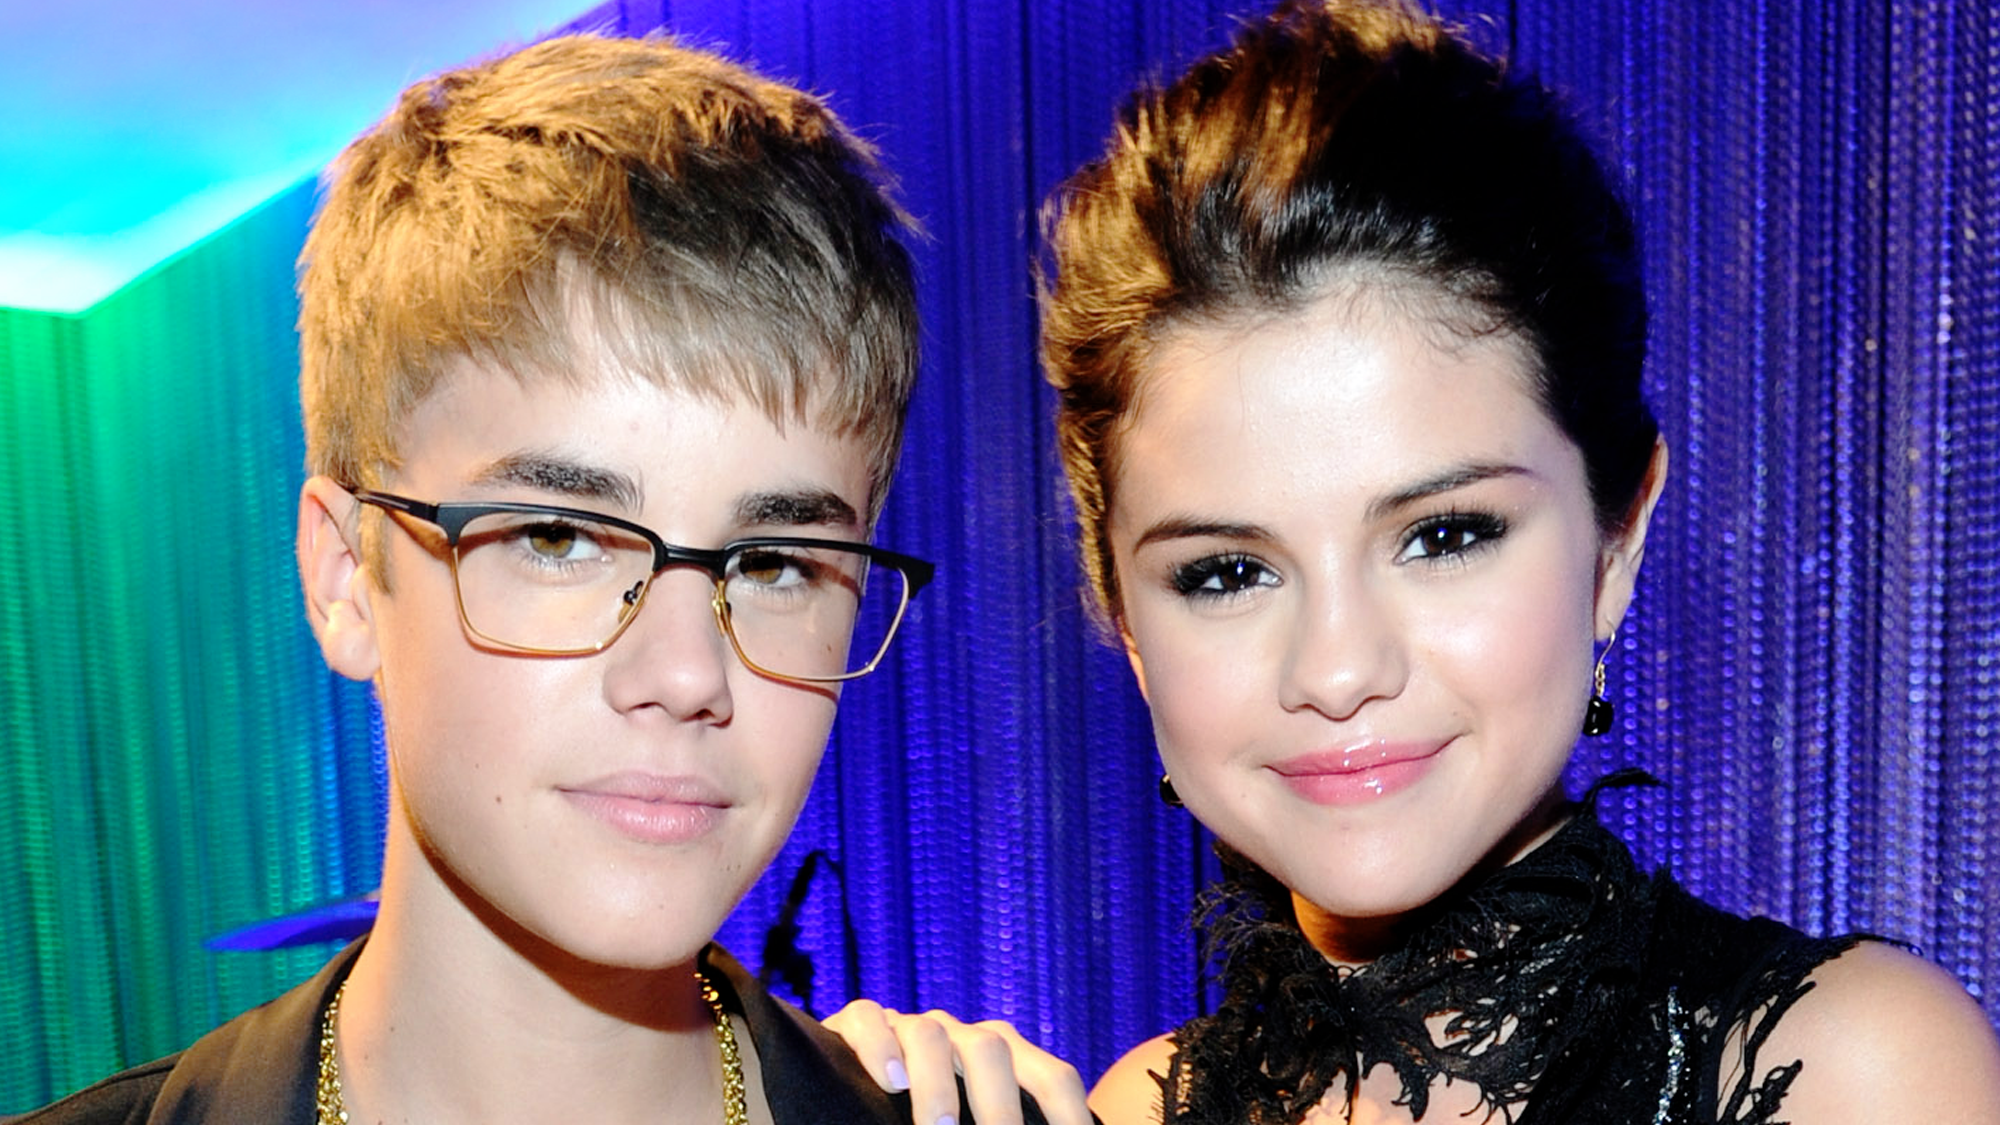 Justin bieber and selena gomez song cant steal our love